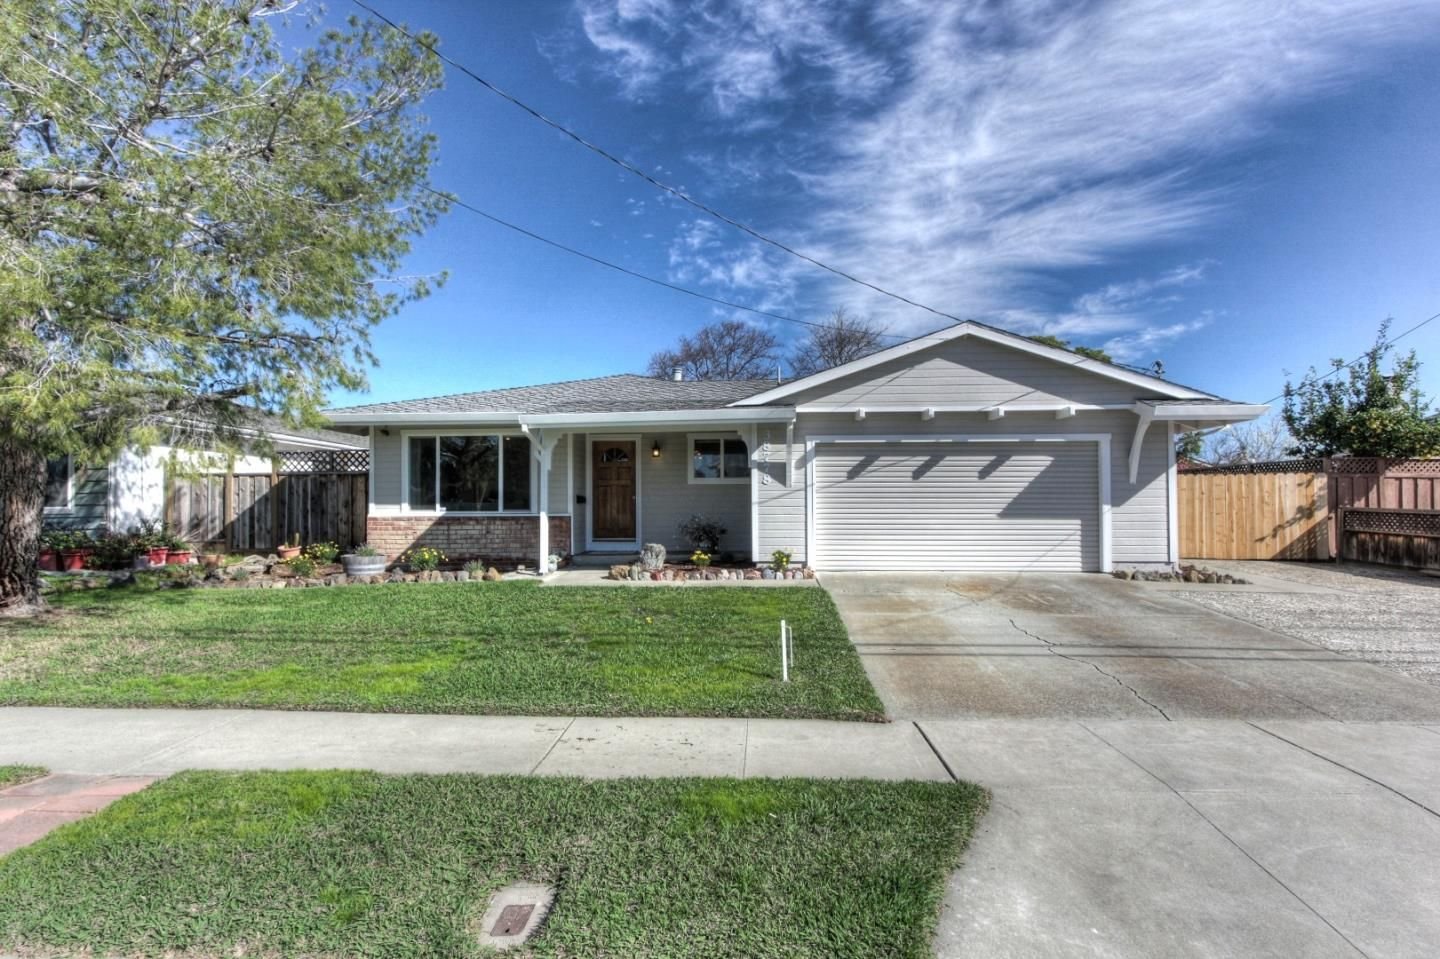 OPEN HOUSE: Saturday, February 20, 2016 1:00 PM - 4:00 PM. View property details for 38778 Larkspur St, Newark, CA. 38778 Larkspur St is a Single Family property with 3 bedrooms and 2 total baths for sale at $739,000. MLS# 81551091.